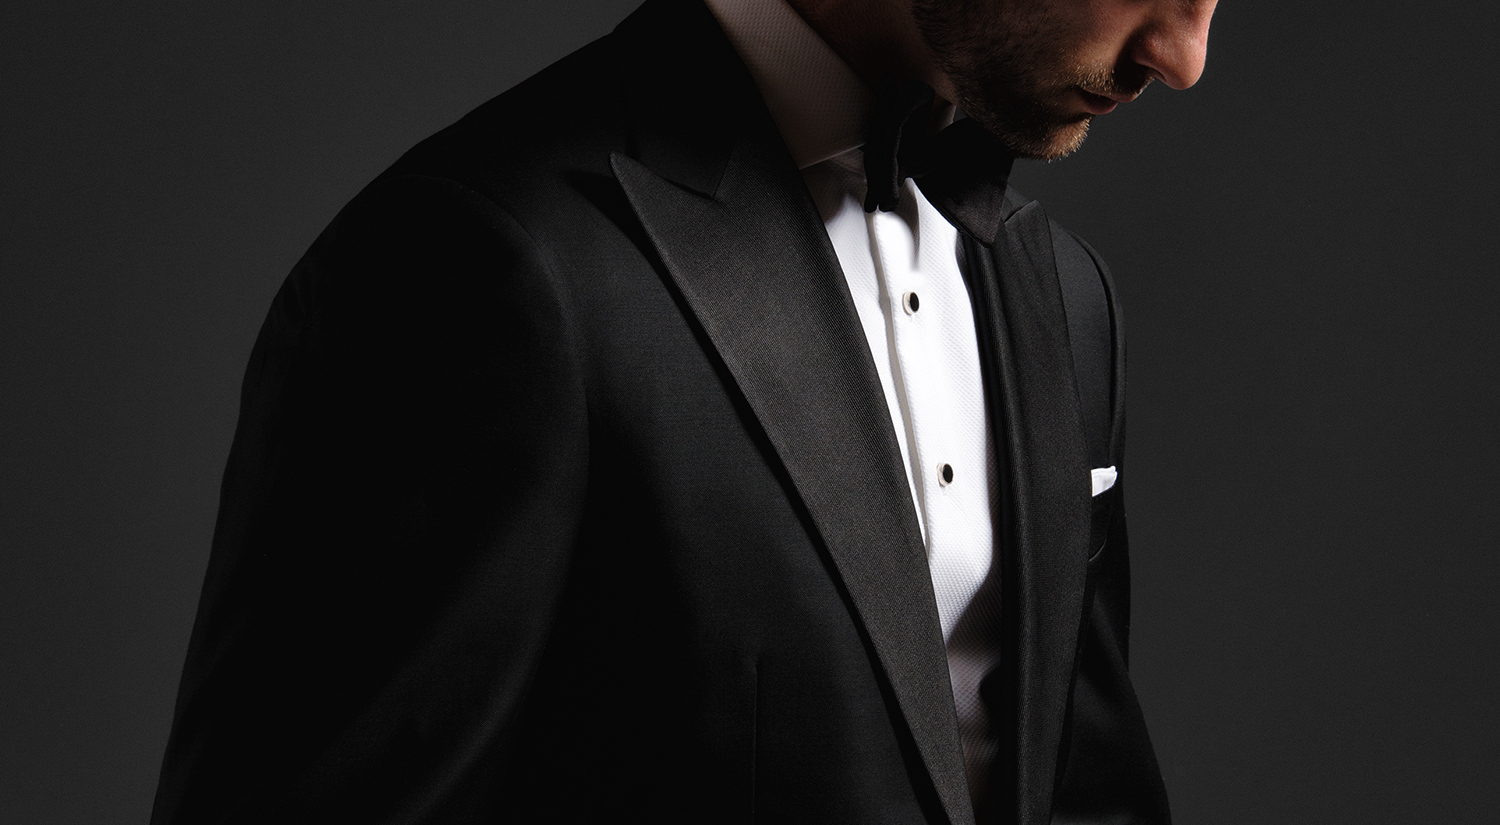 Custom Tuxedo Shirts and Black Tie